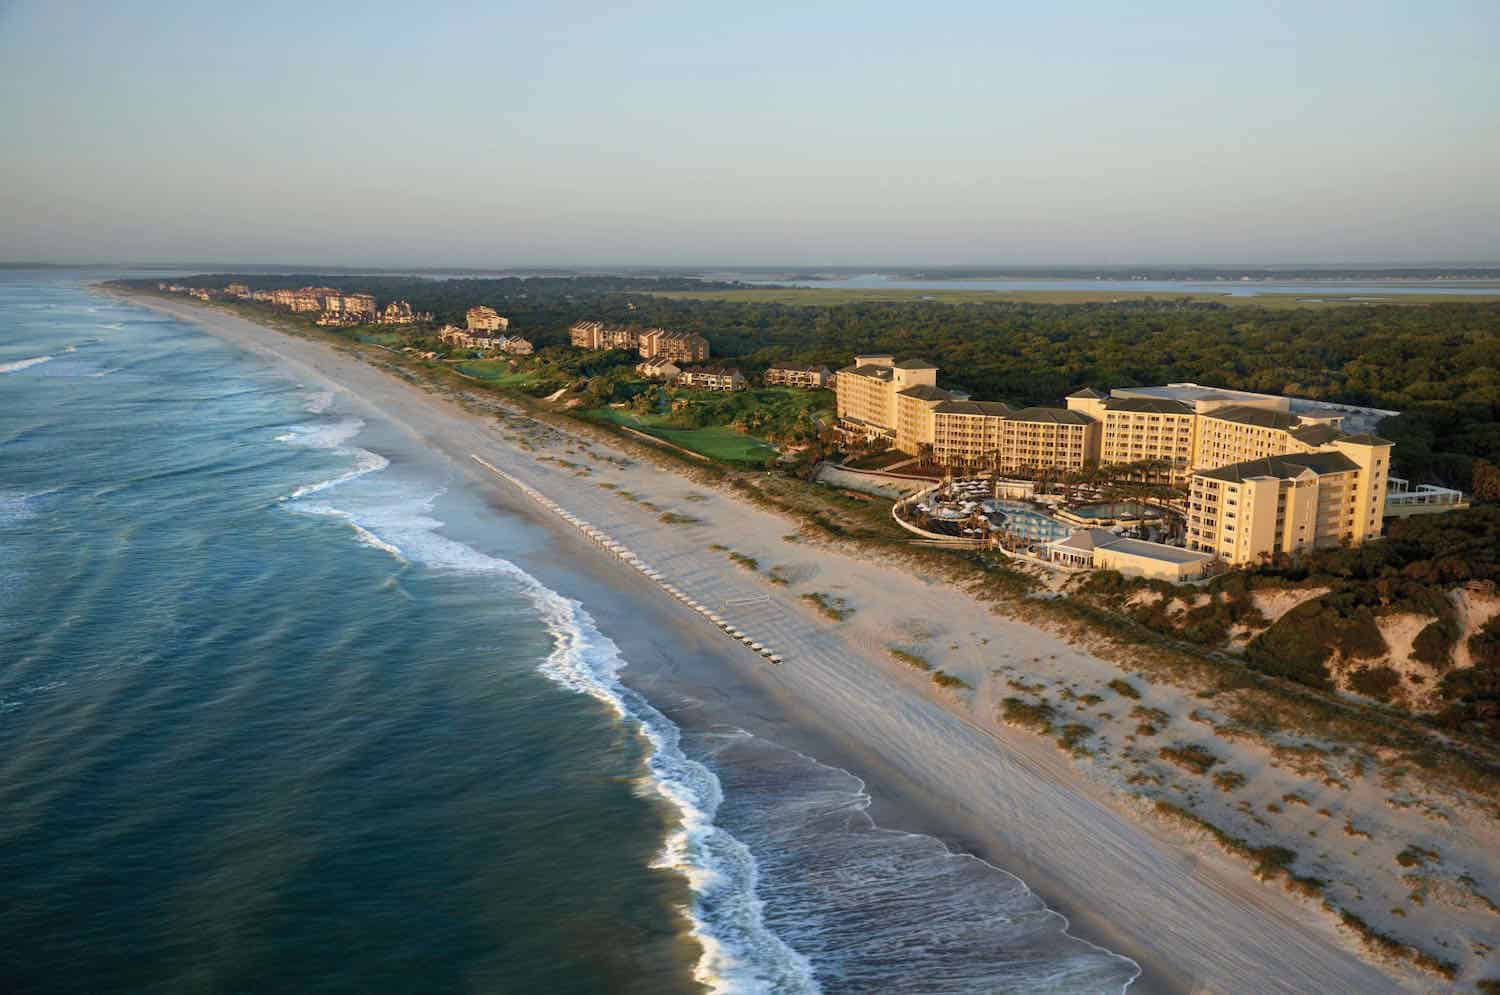 Overhead view of ocean, sand and beach condos at Amelia Island.